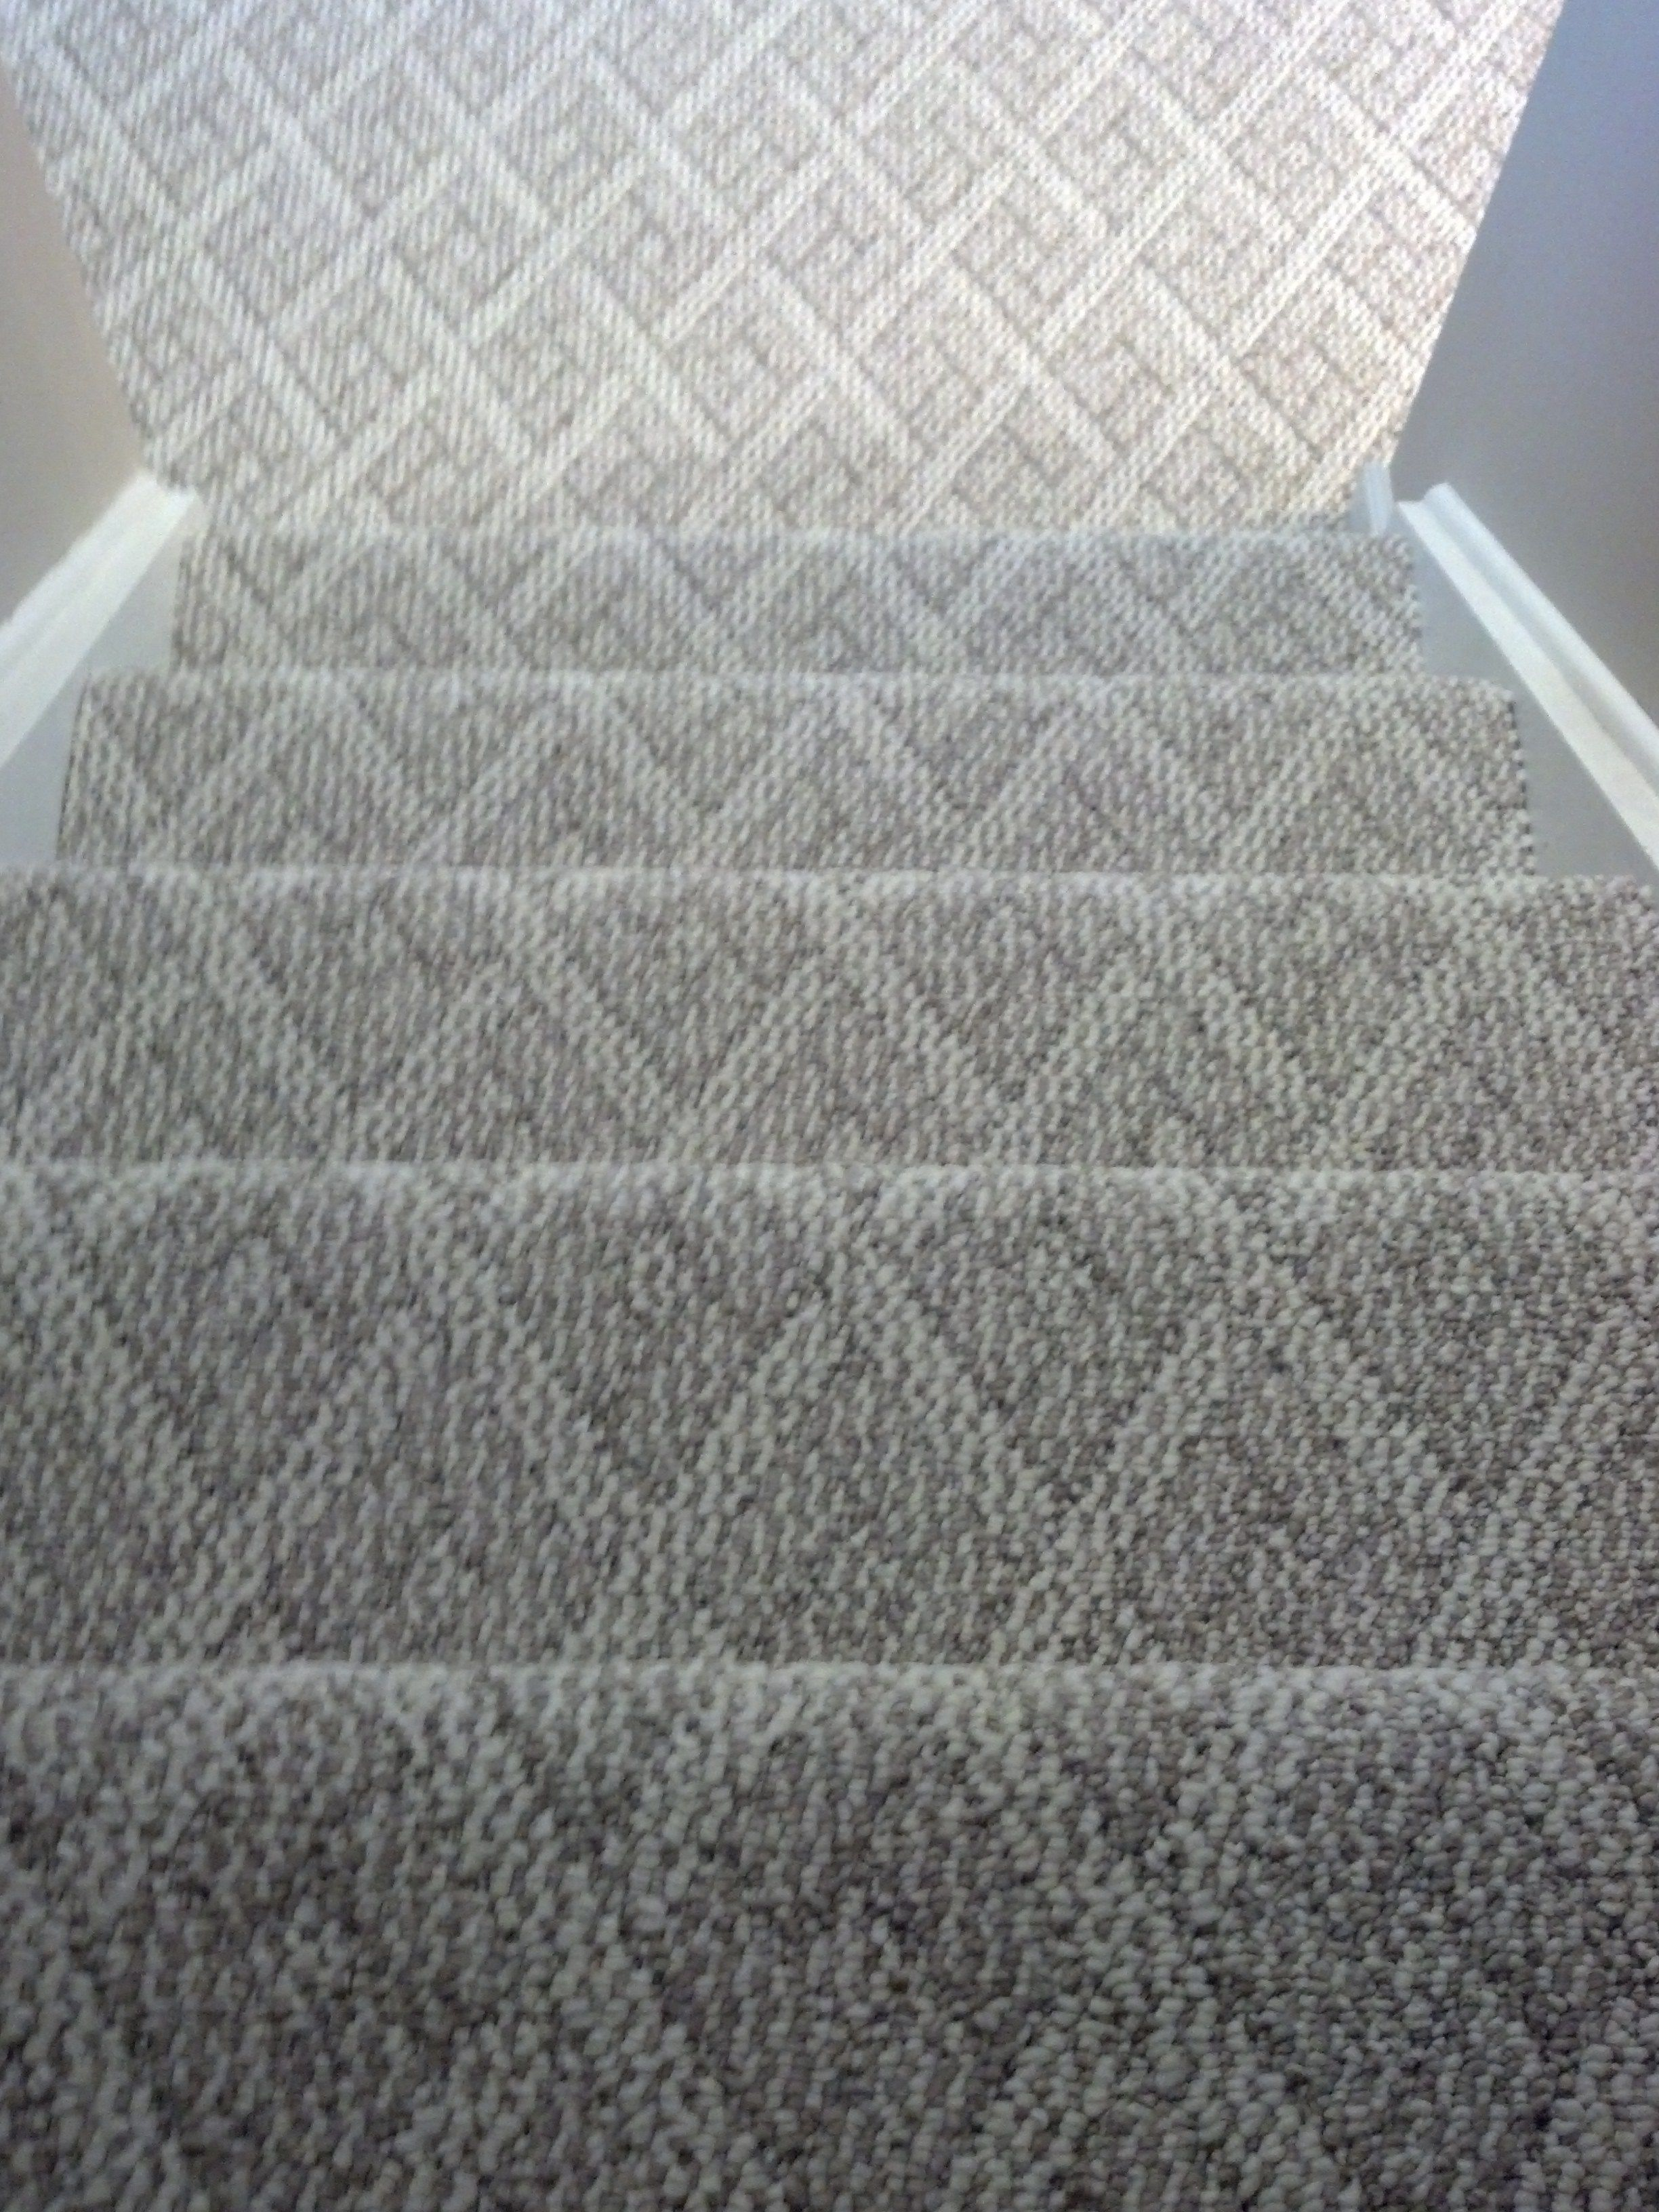 Berber Carpet Cincinnati Ohio Installed On Steps And Basement Family Roomnotice The Pattern Lining Up Each Step Floor Done By CFI Brandon K From